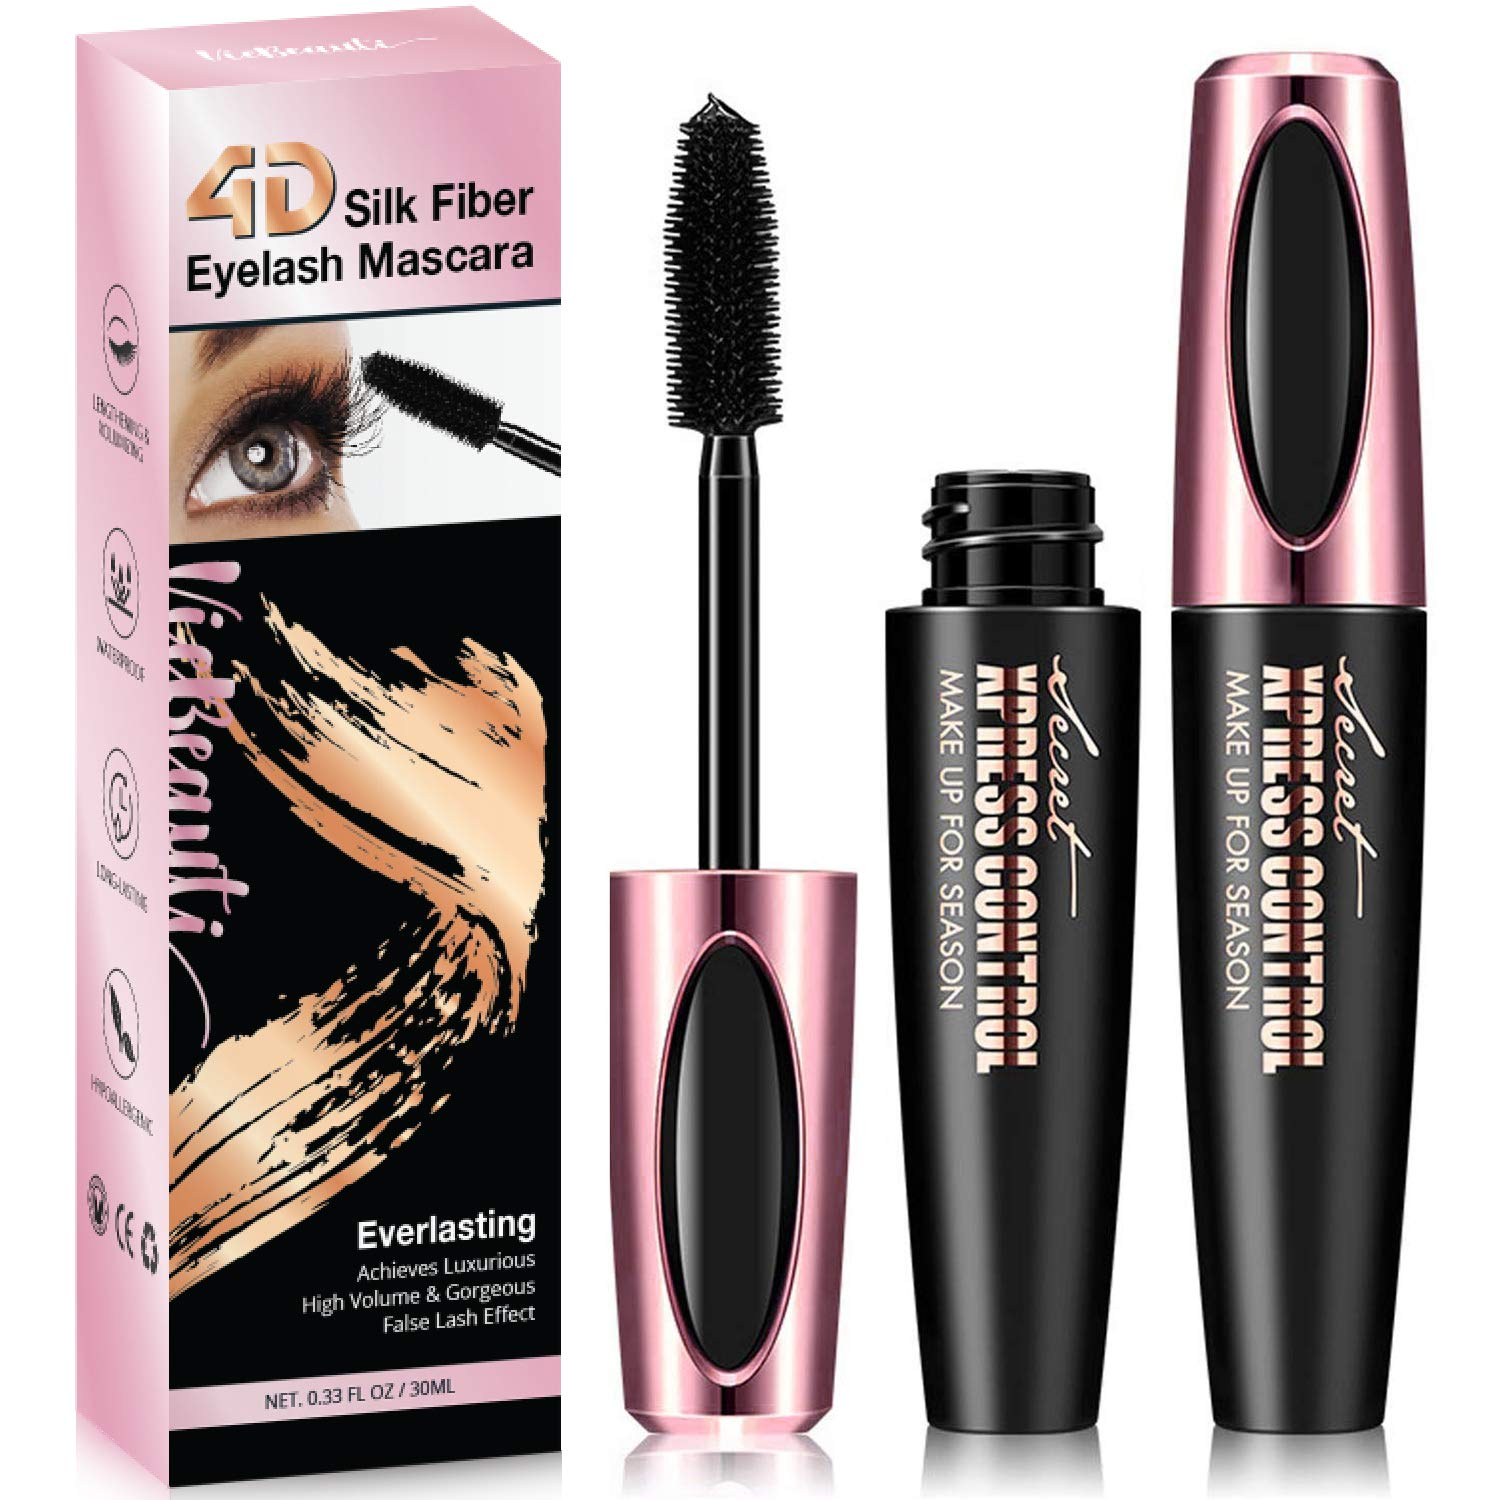 27ba3f7b1e5 VieBeauti ULTIMATE 4D Silk Fiber Lash Mascara Adds Length, Depth and  Glamour Effortlessly – Waterproof